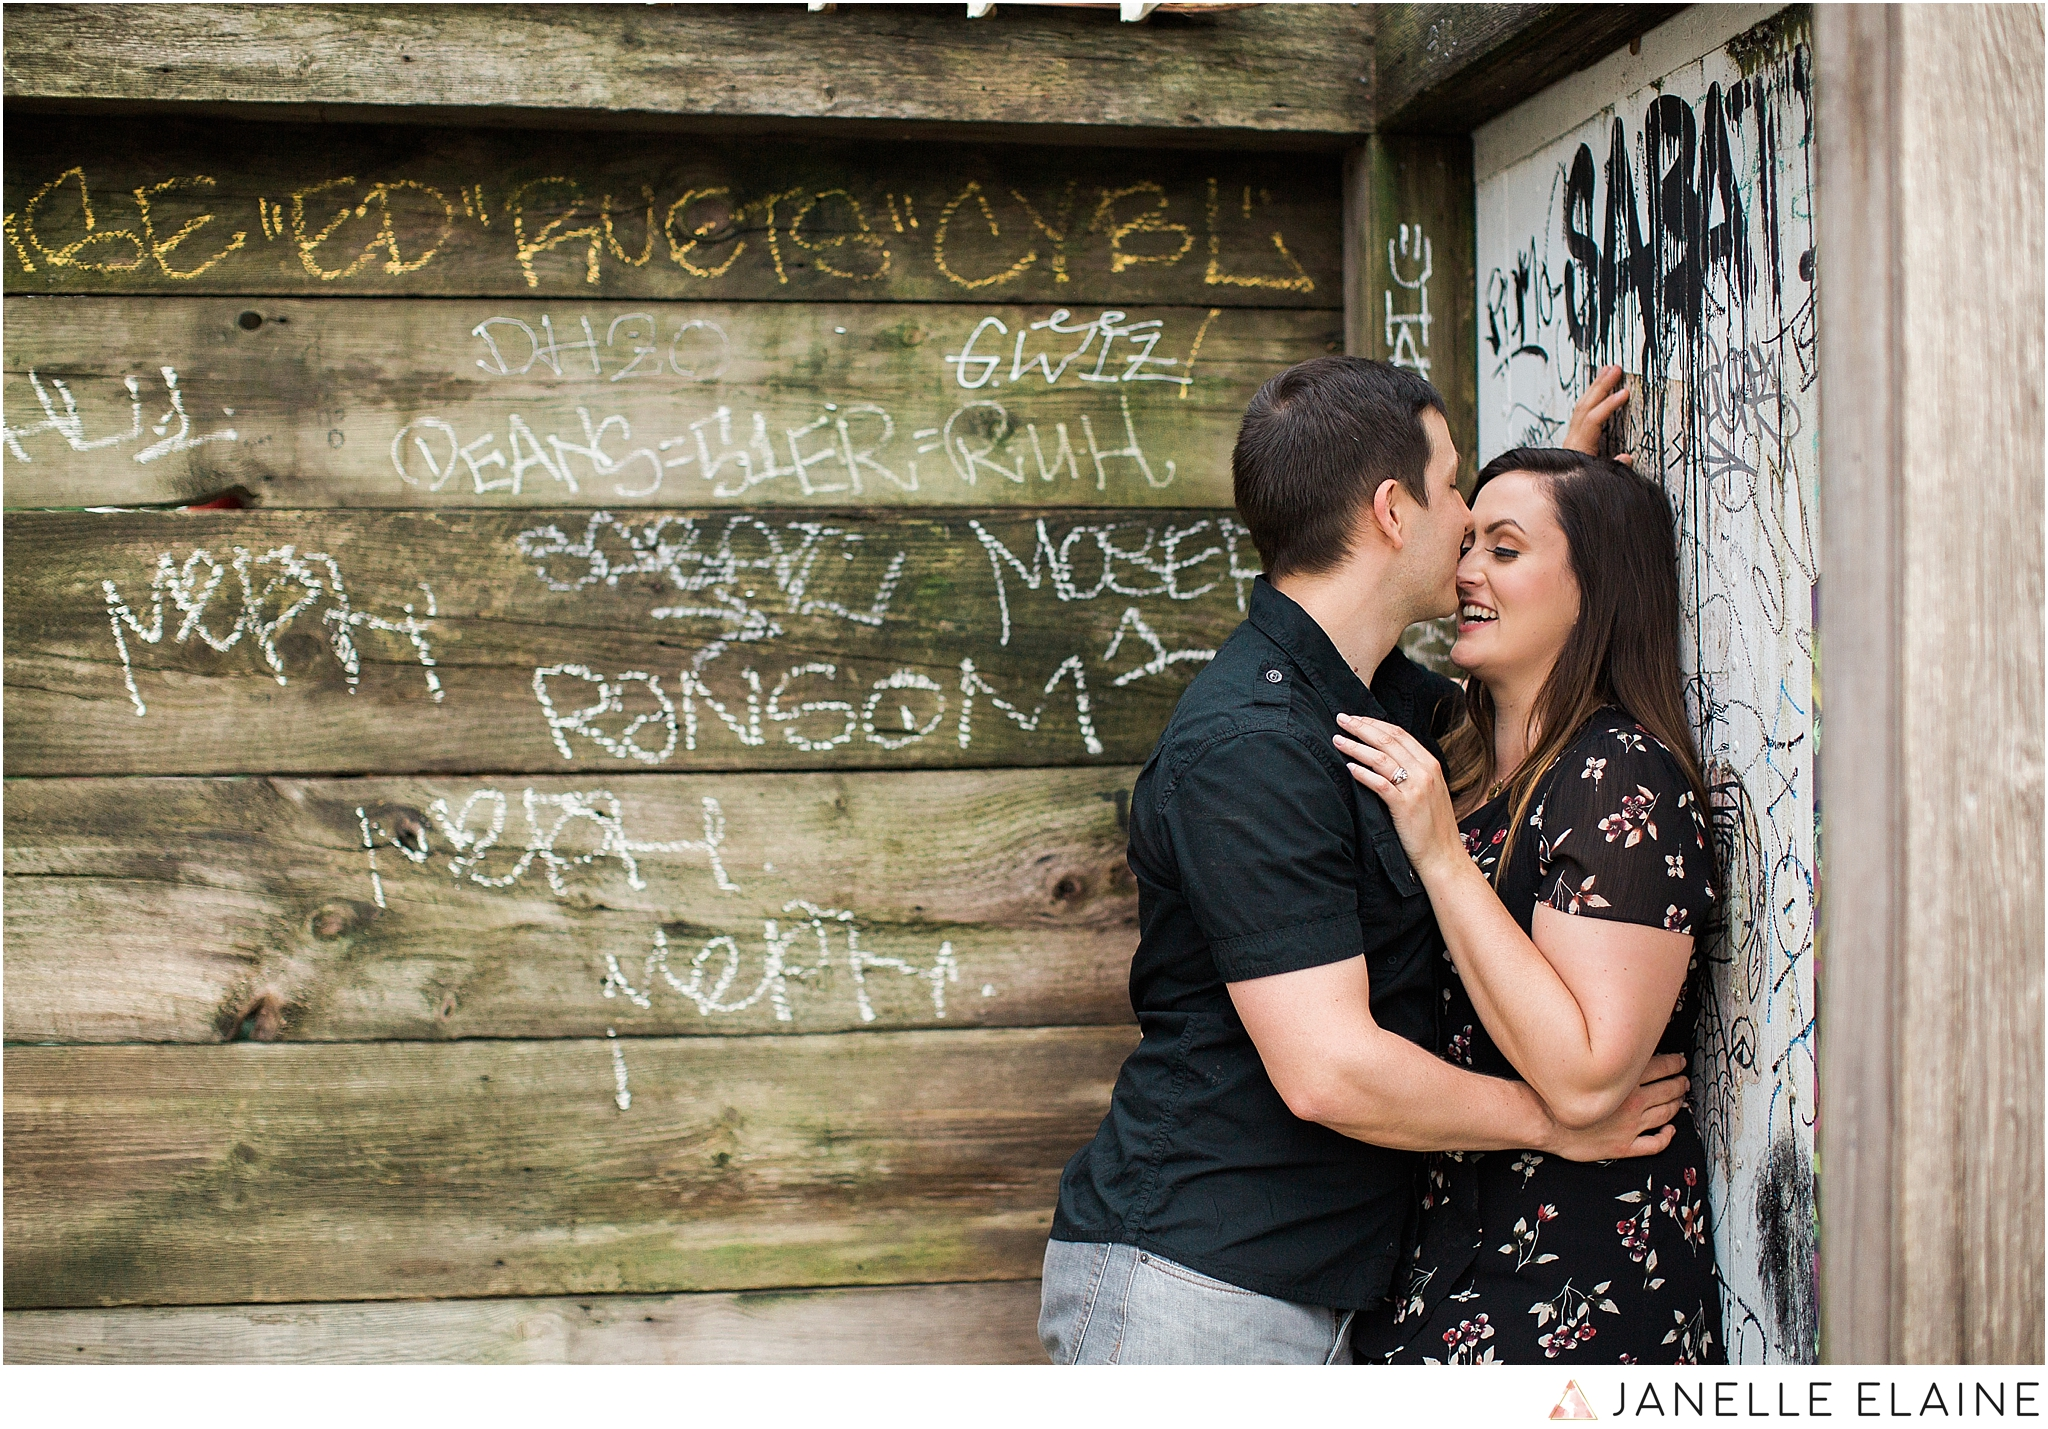 karen ethan-georgetown engagement photos-seattle-janelle elaine photography-43.jpg